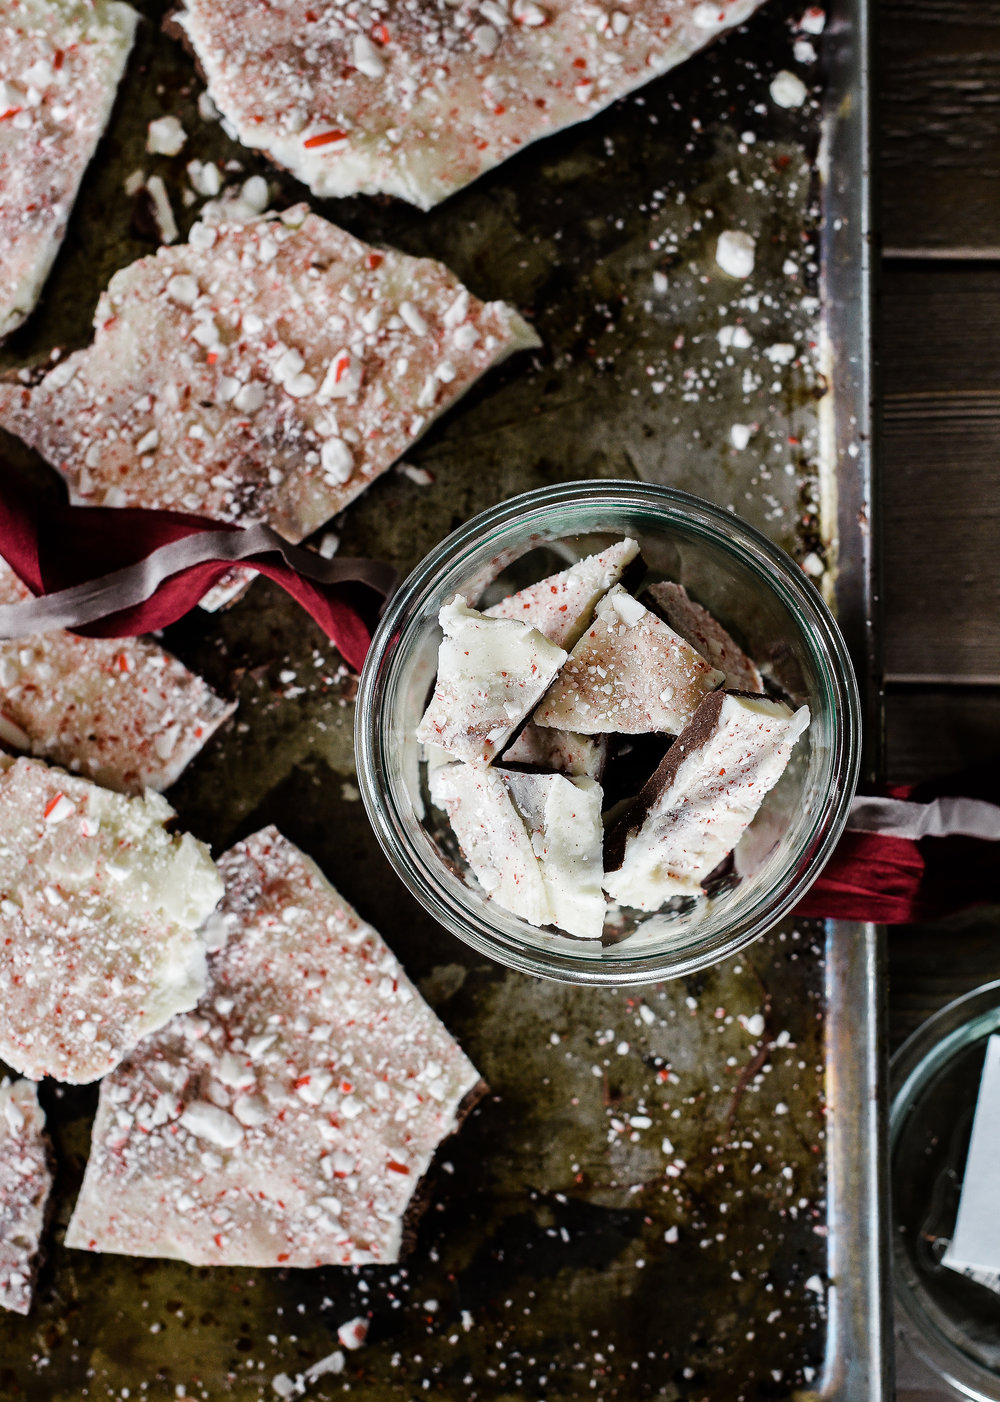 Make this homemade peppermint bark this holiday season as an easy Christmas treat or DIY Christmas gift! boxwoodavenue.com #christmasbaking #ediblechristmasgift